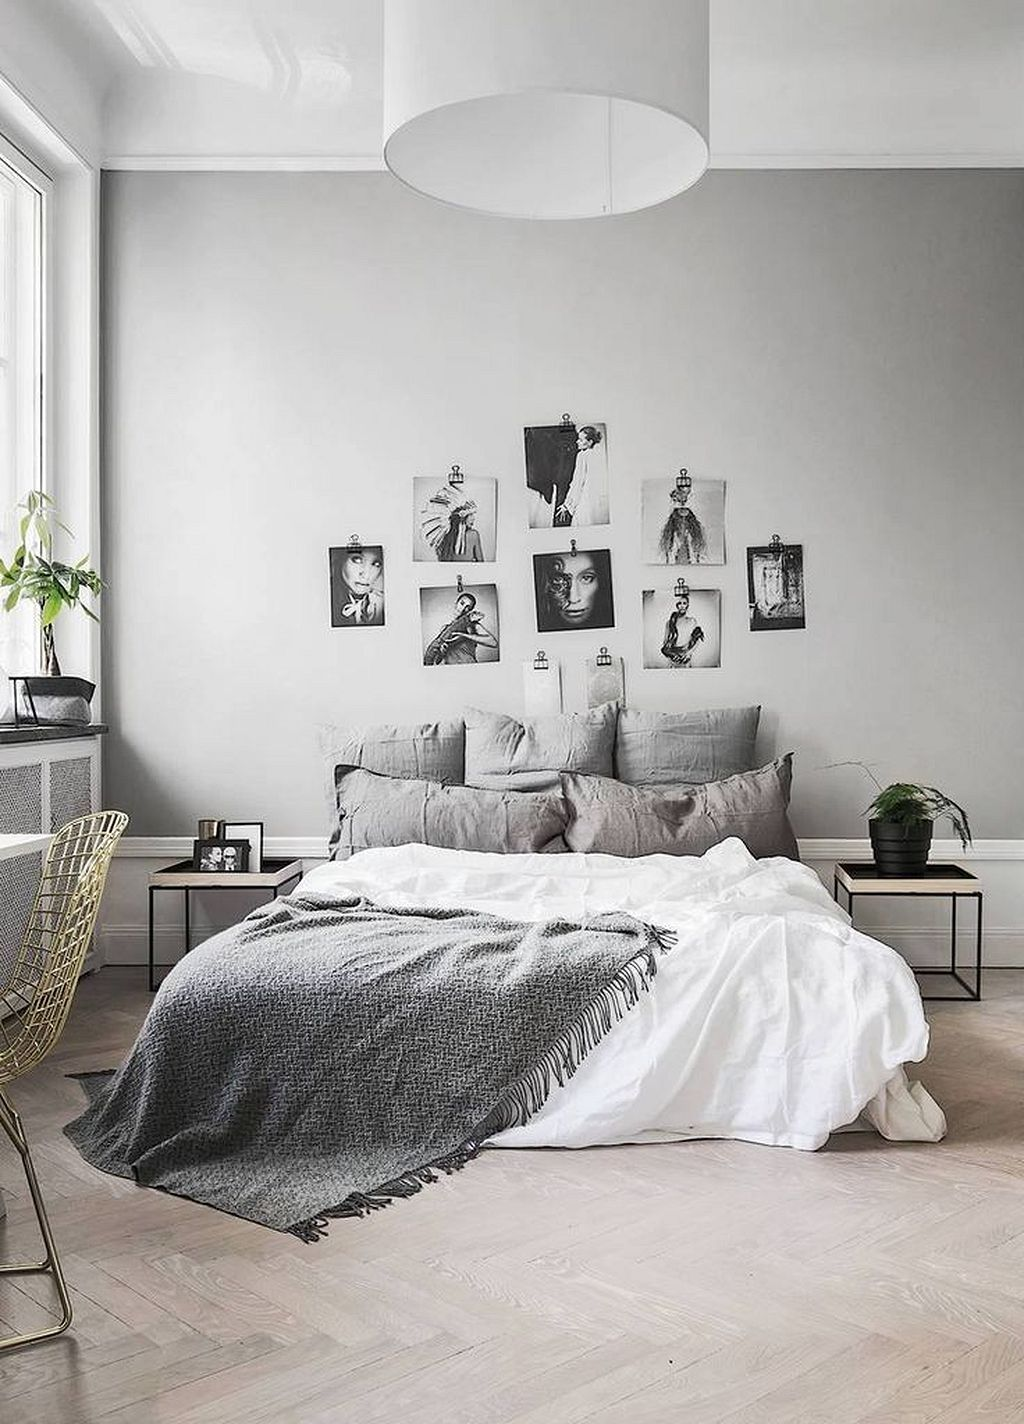 Awesome 95 Minimalist Decor Ideas From The Experts https ...